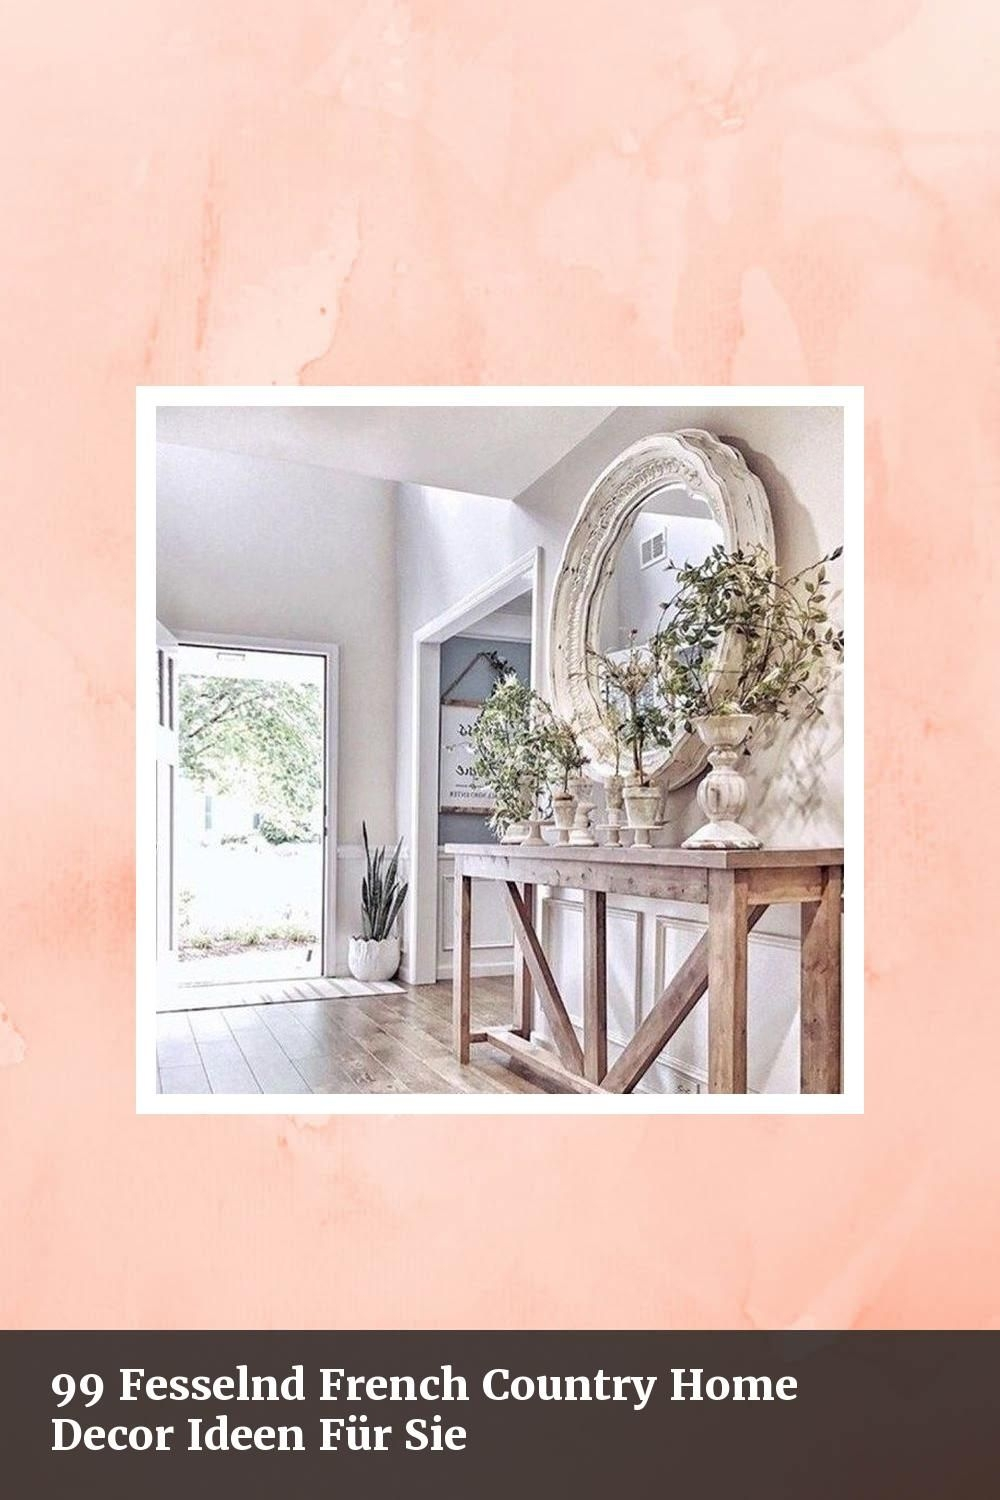 Comely Pinterest Home Decor Ideas Country On Decorative 99 Fesselnd French Country Home Decor Ideen Für Sie Ebext On Pinterest Home Decor Ideas Country